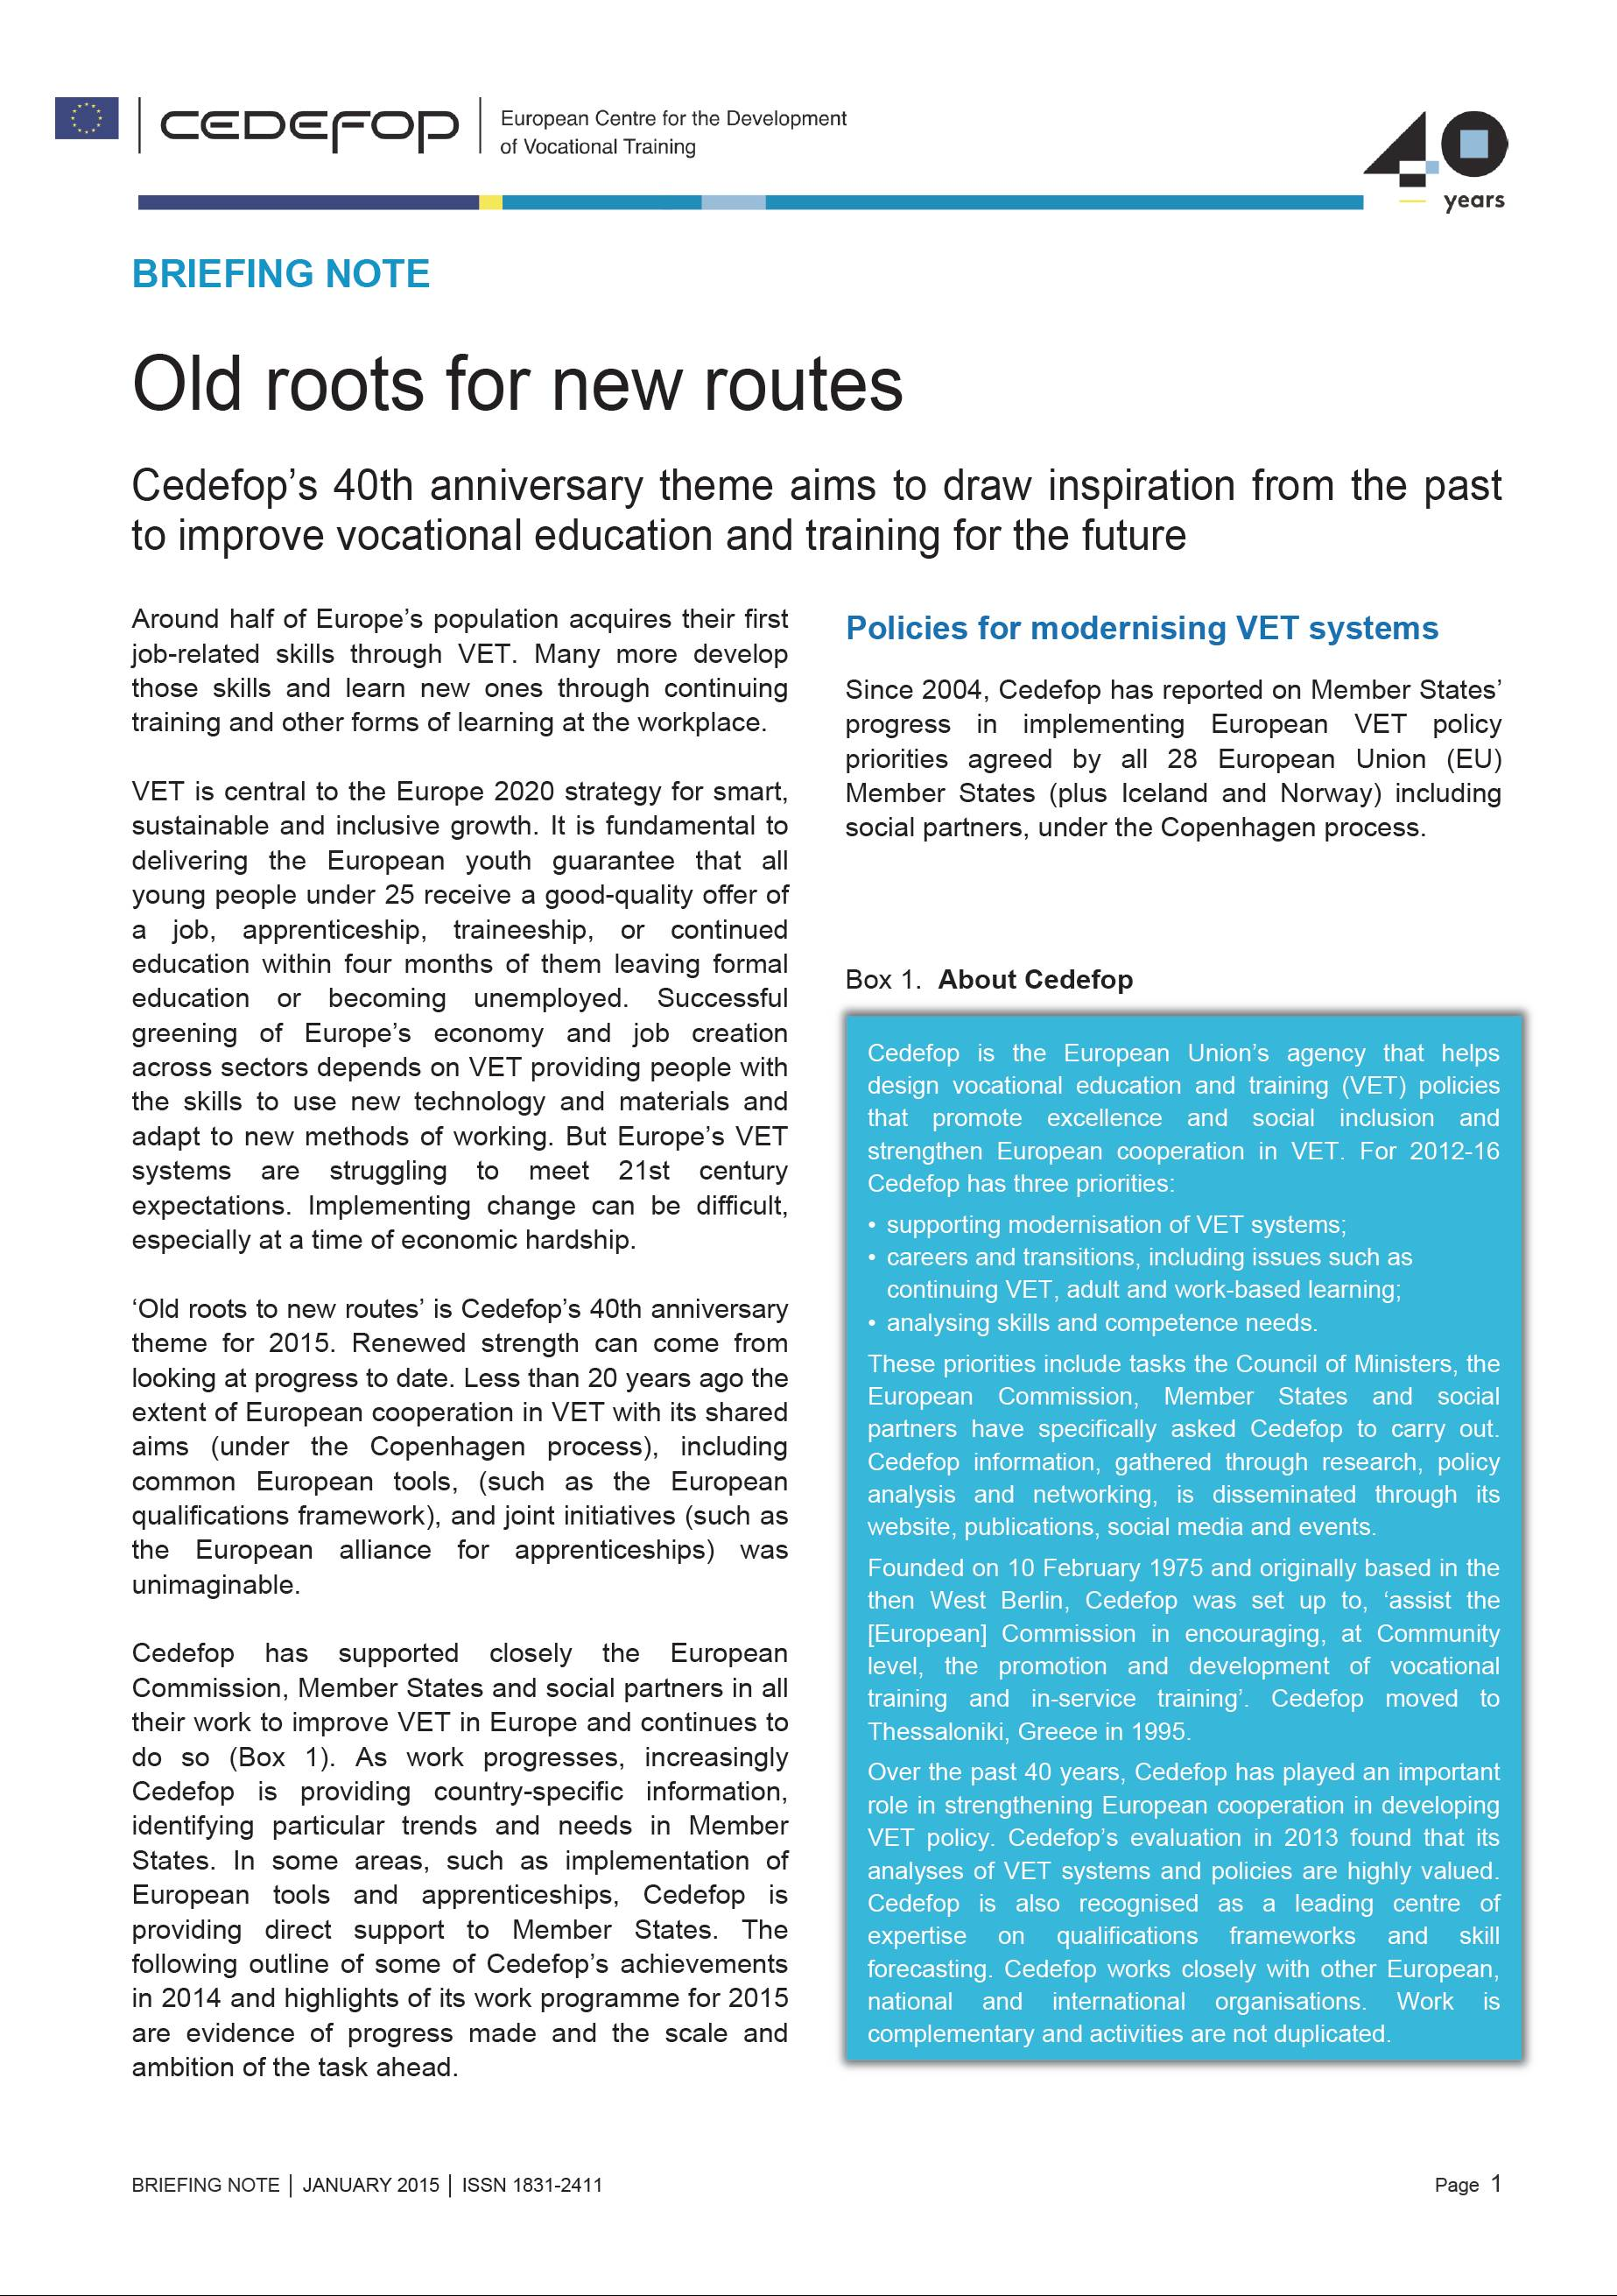 Old roots for new routes